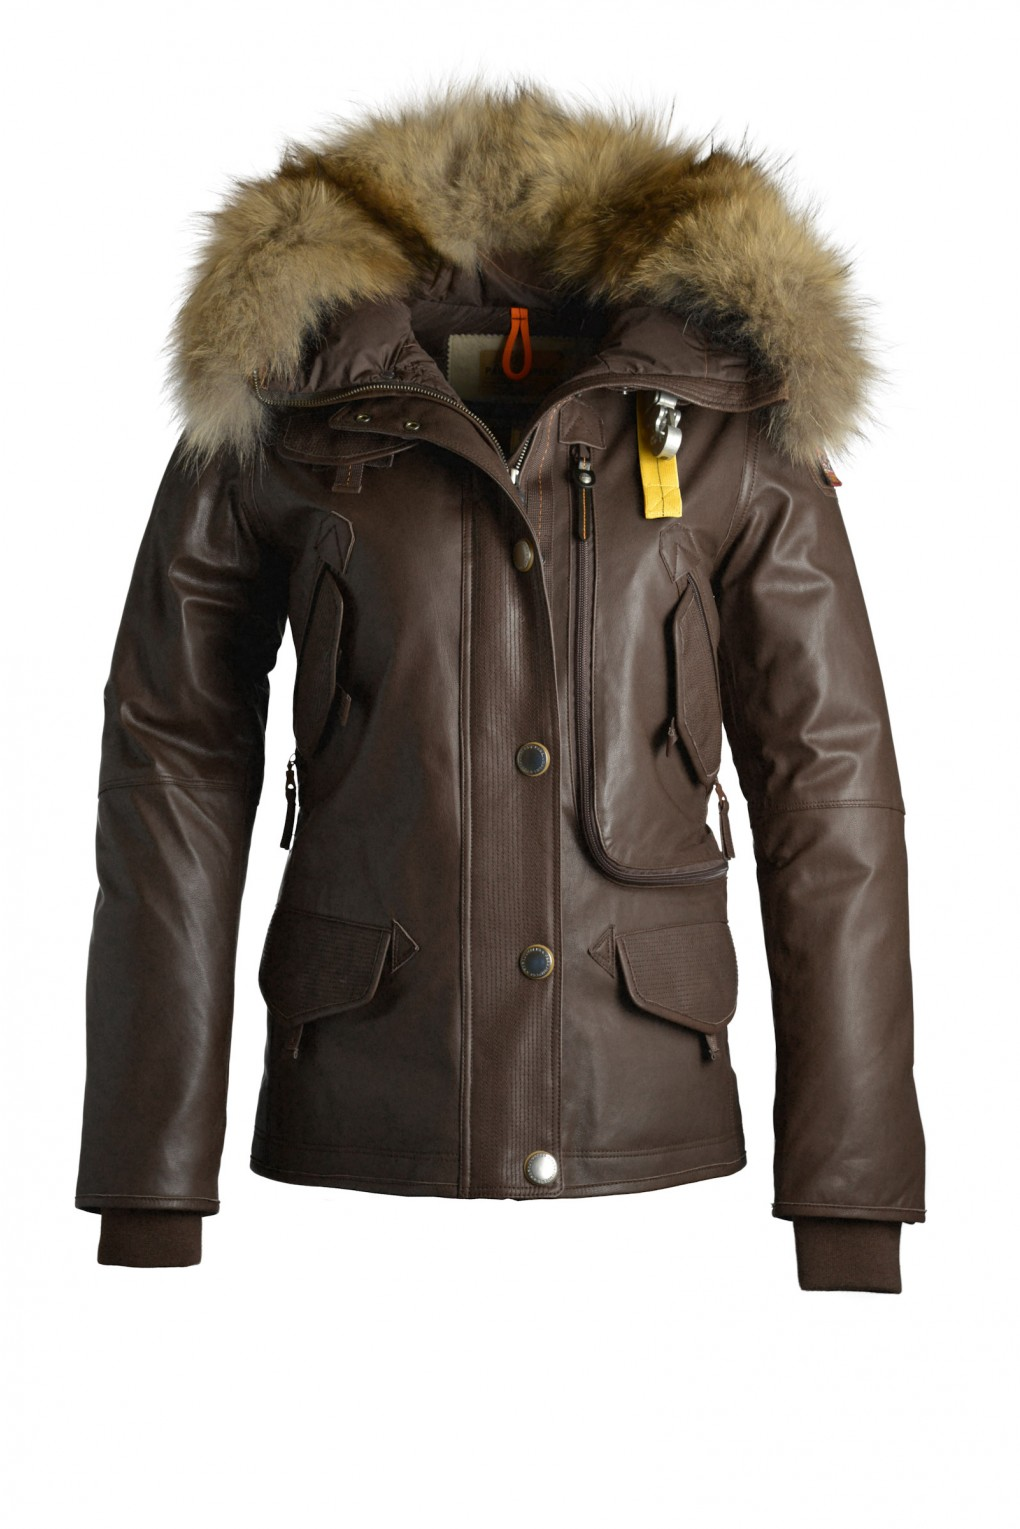 parajumpers DORIS LEATHER woman outerwear Dark Brown